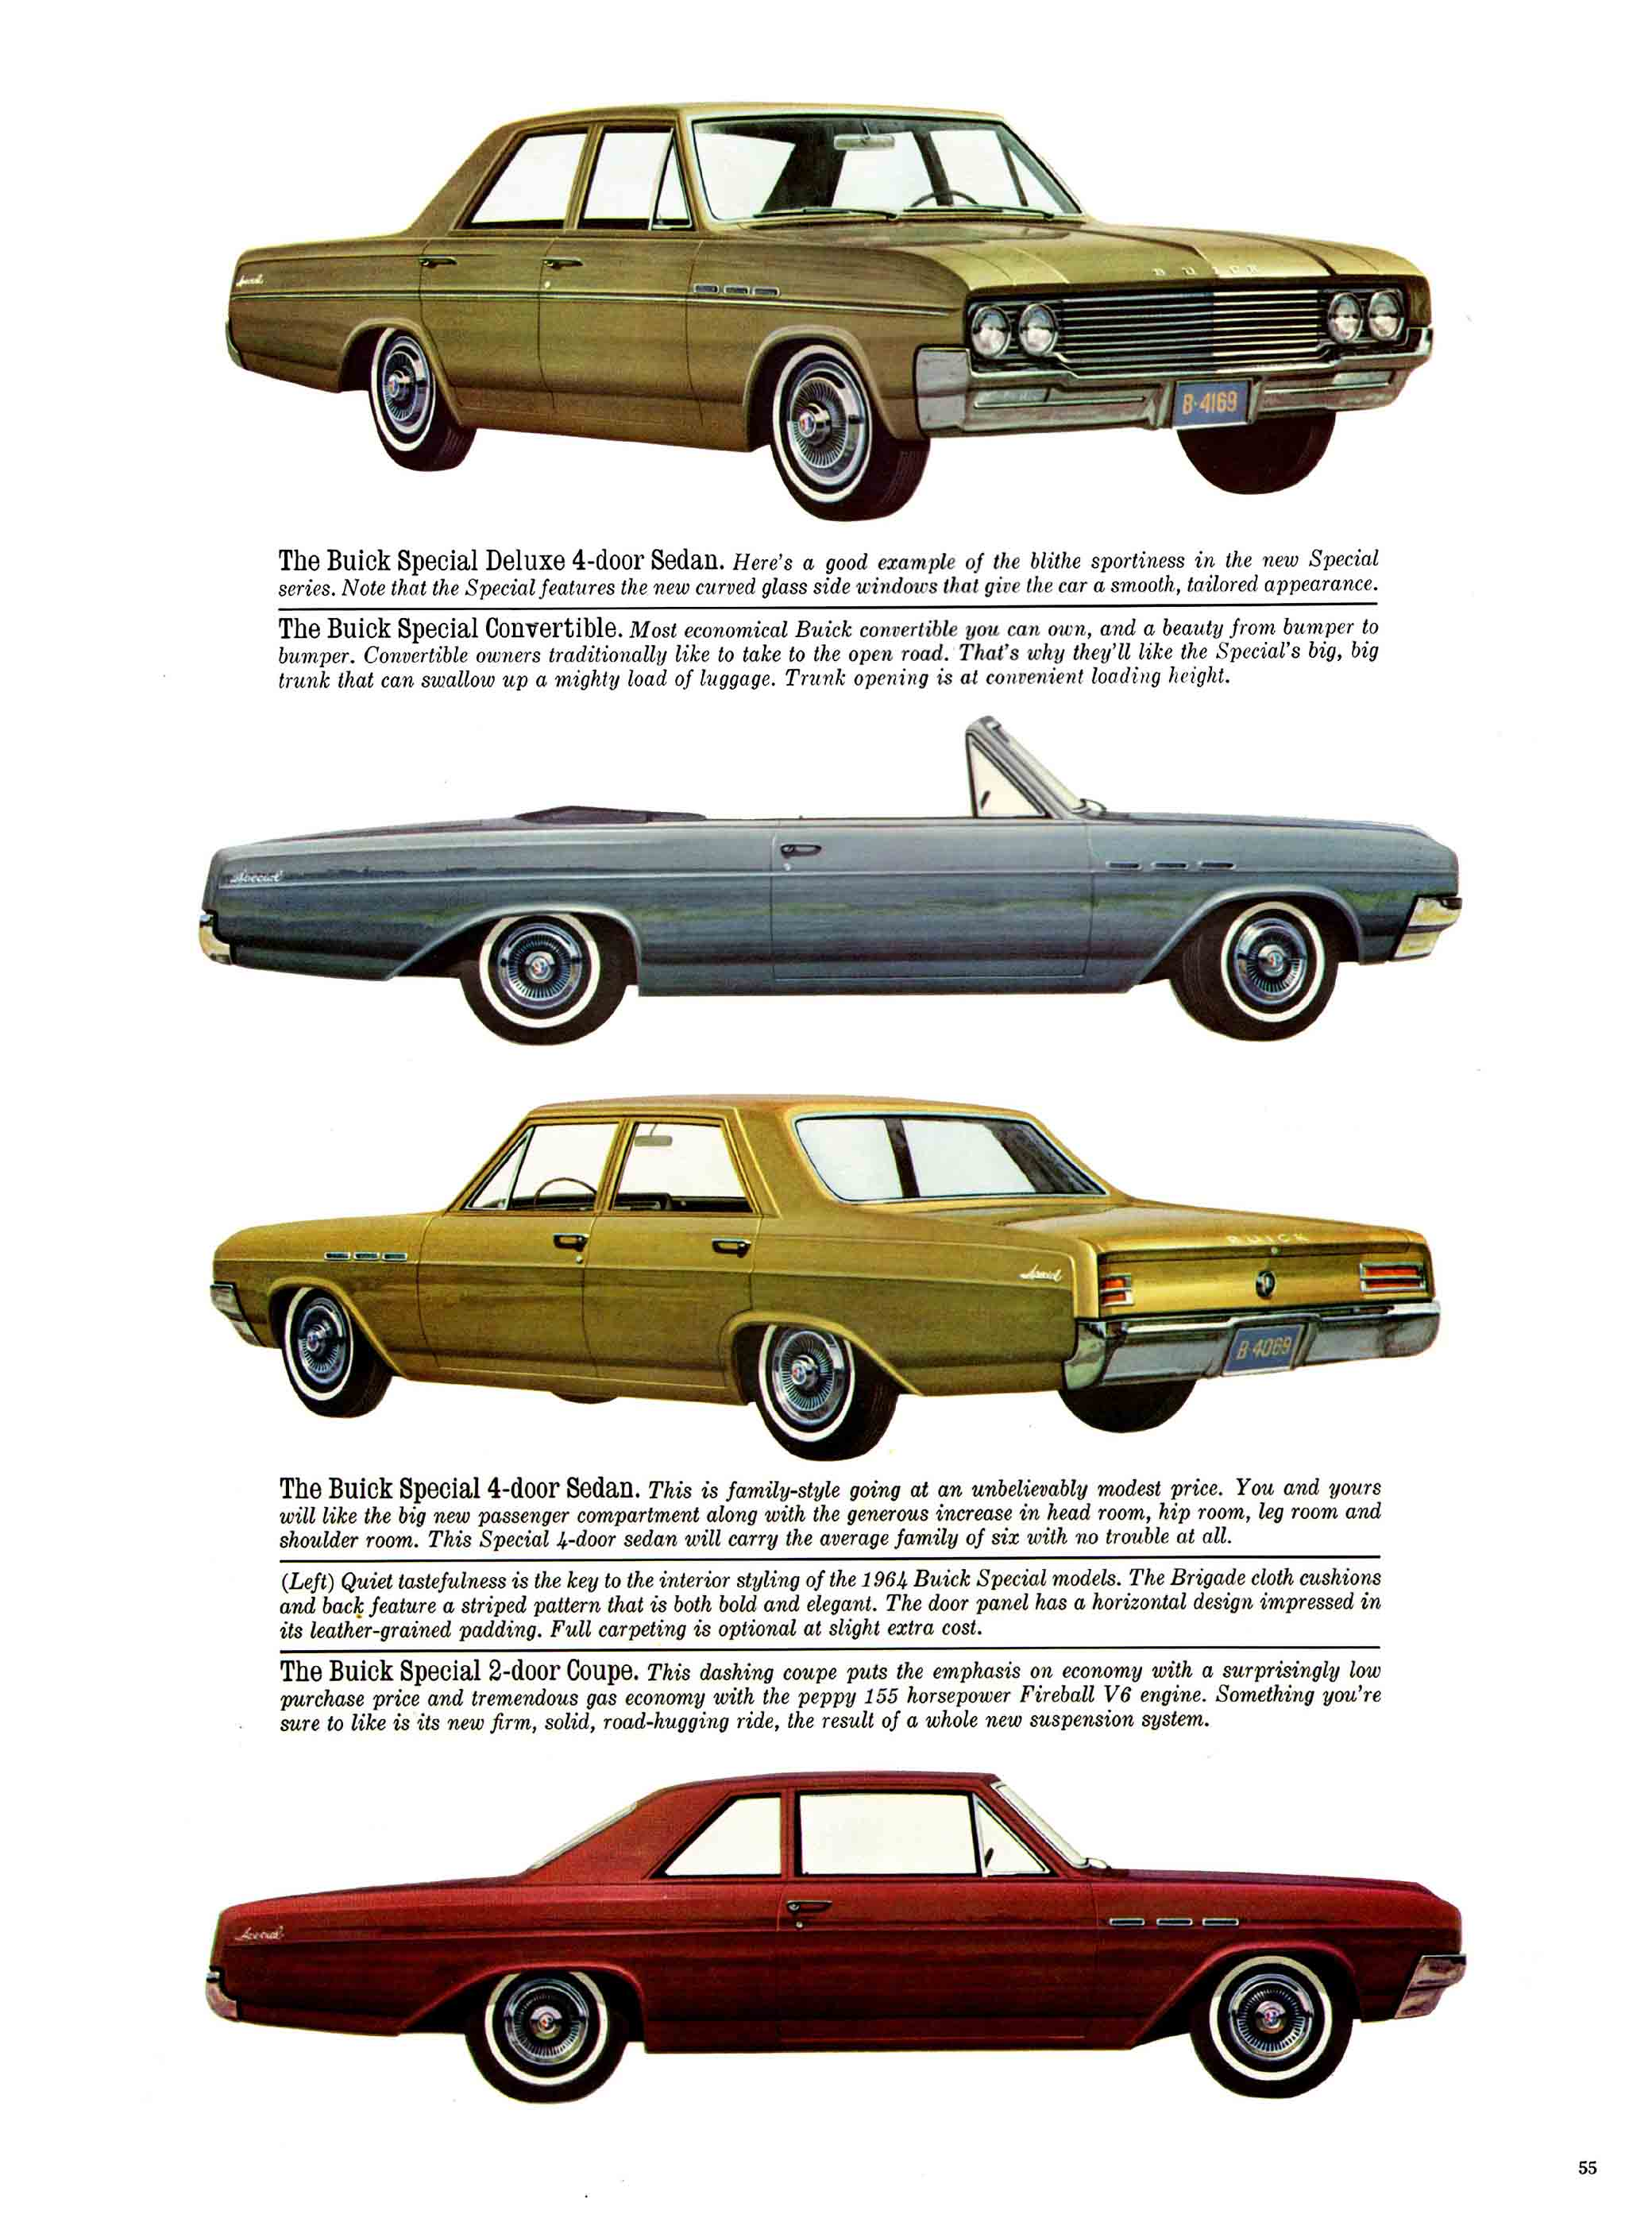 1964 Buick Full Line Prestige Brochure Page 35 Of 40